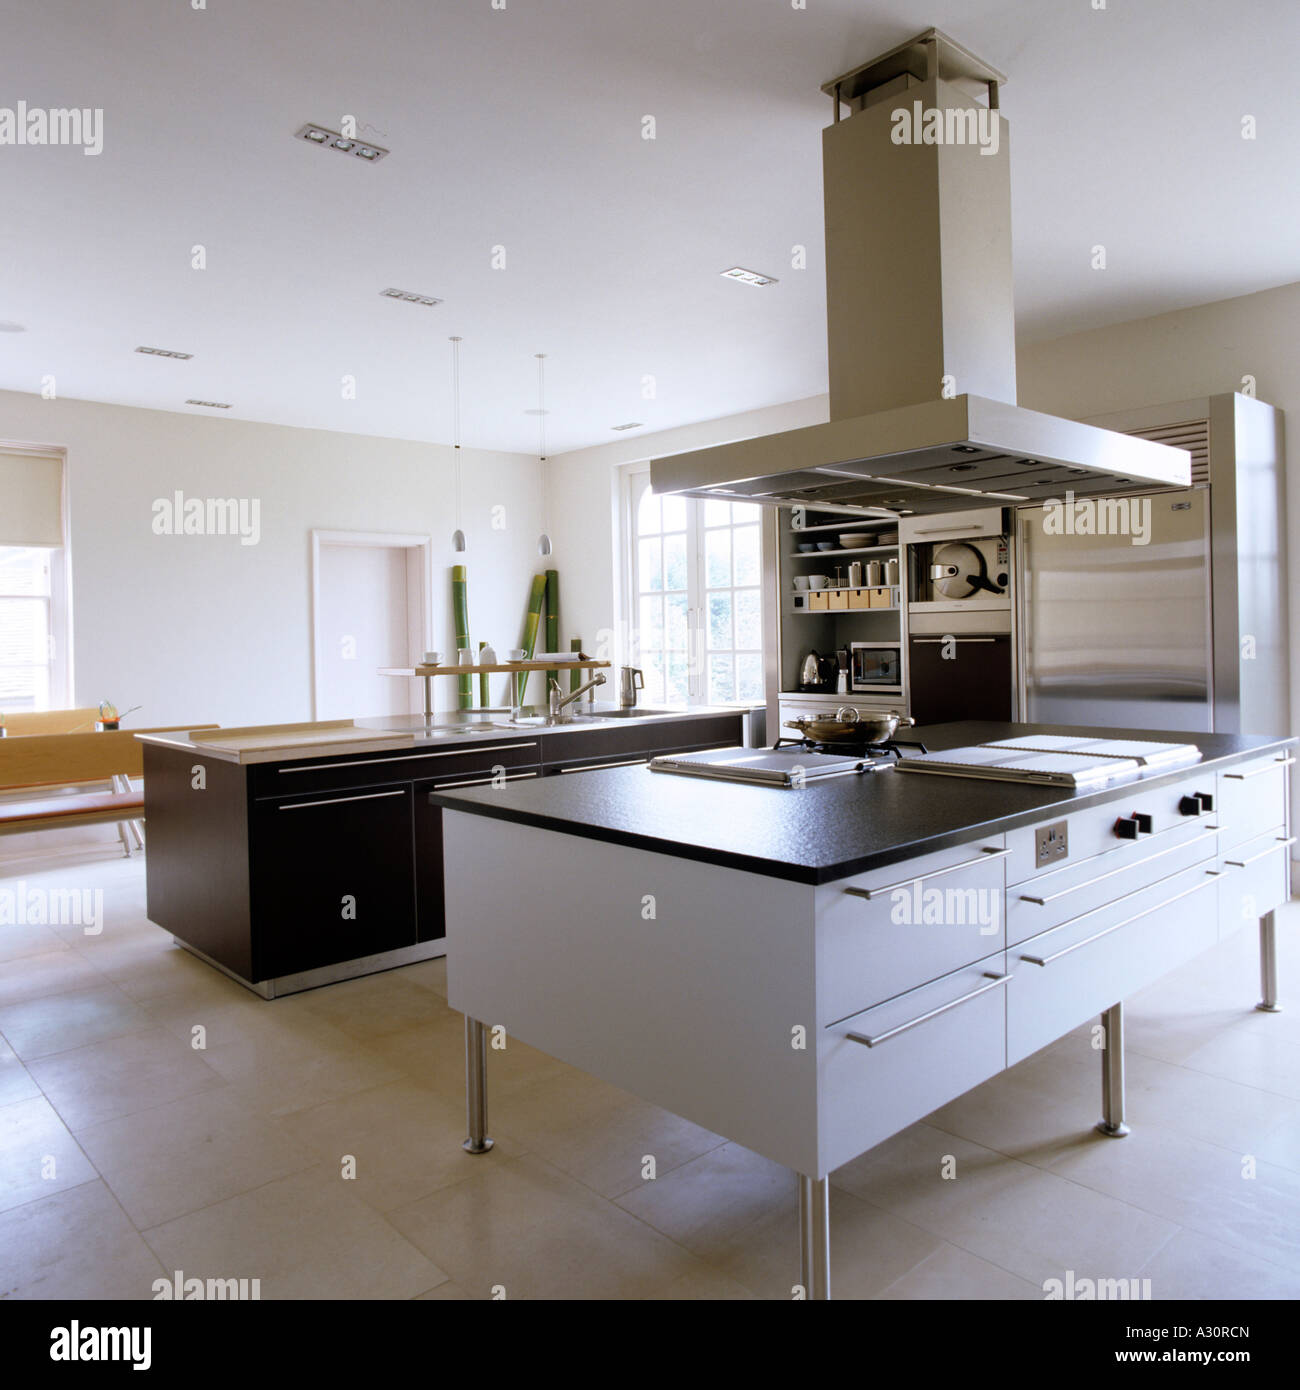 Modern Kitchen With Island And Large Extractor Fan Stock